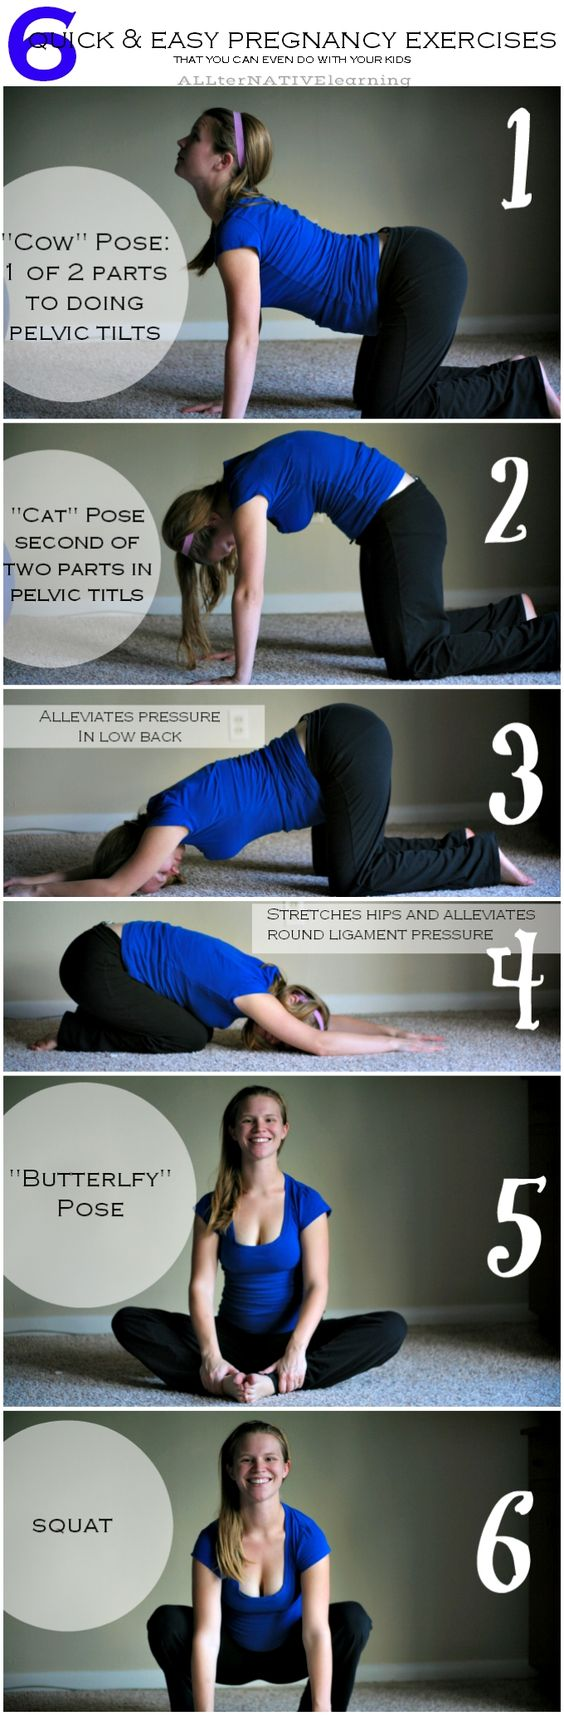 Click the image for 4 MORE easy exercises to do while pregnant. Pregnancy exercises that are quick and easy. 10 ideas for prenatal exercises you can even get done with a toddler in the house   ALLterNATIVElearning